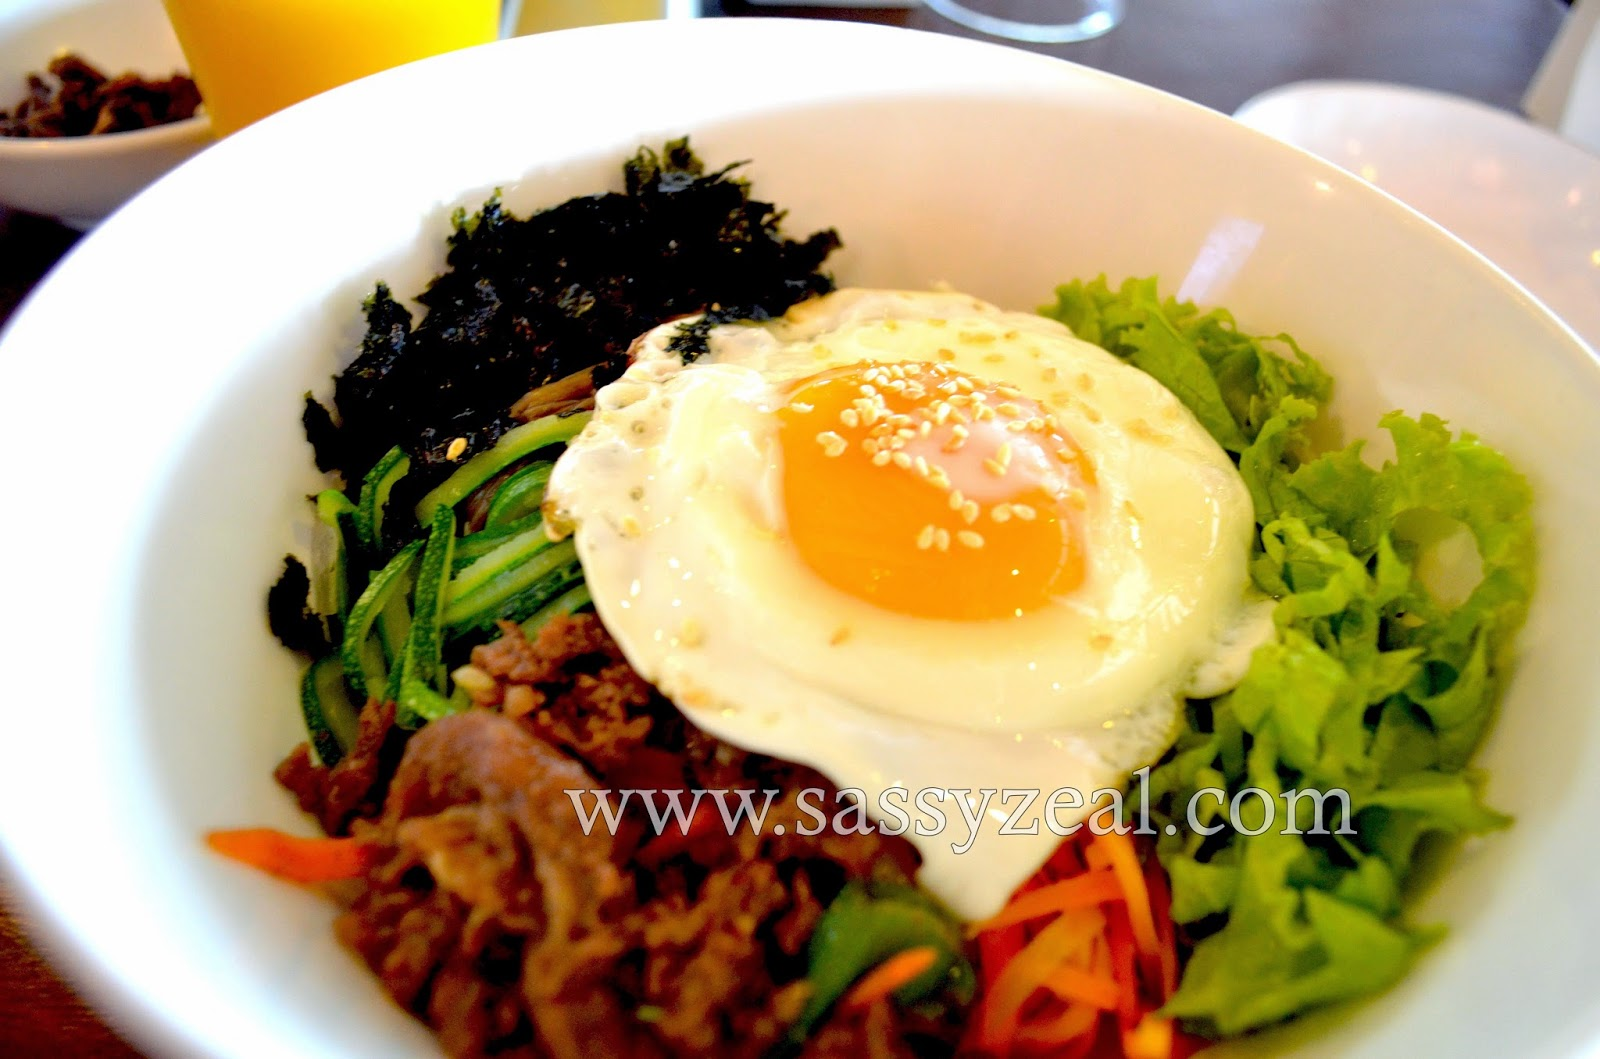 Sassyzeal authentic korean food after an exceptional spa for Authentic korean cuisine